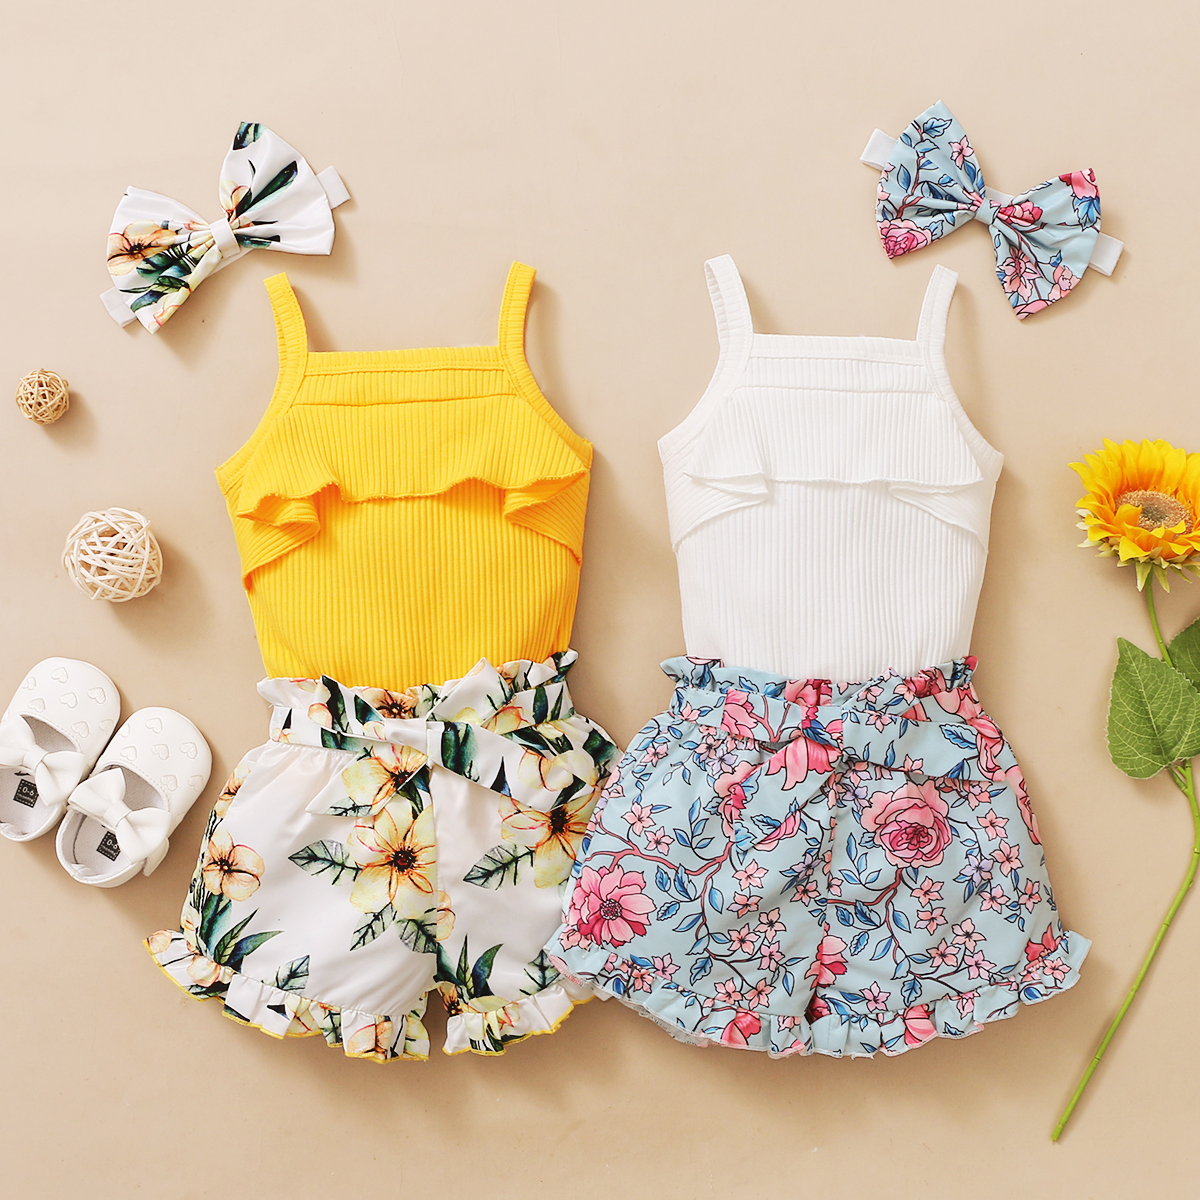 3Pcs Newborn Baby Girls Summer Clothes Cute Beach Boho Strap Ruffle Romper Floral Shorts Toddler Outfit Baby Girls Clothing 1